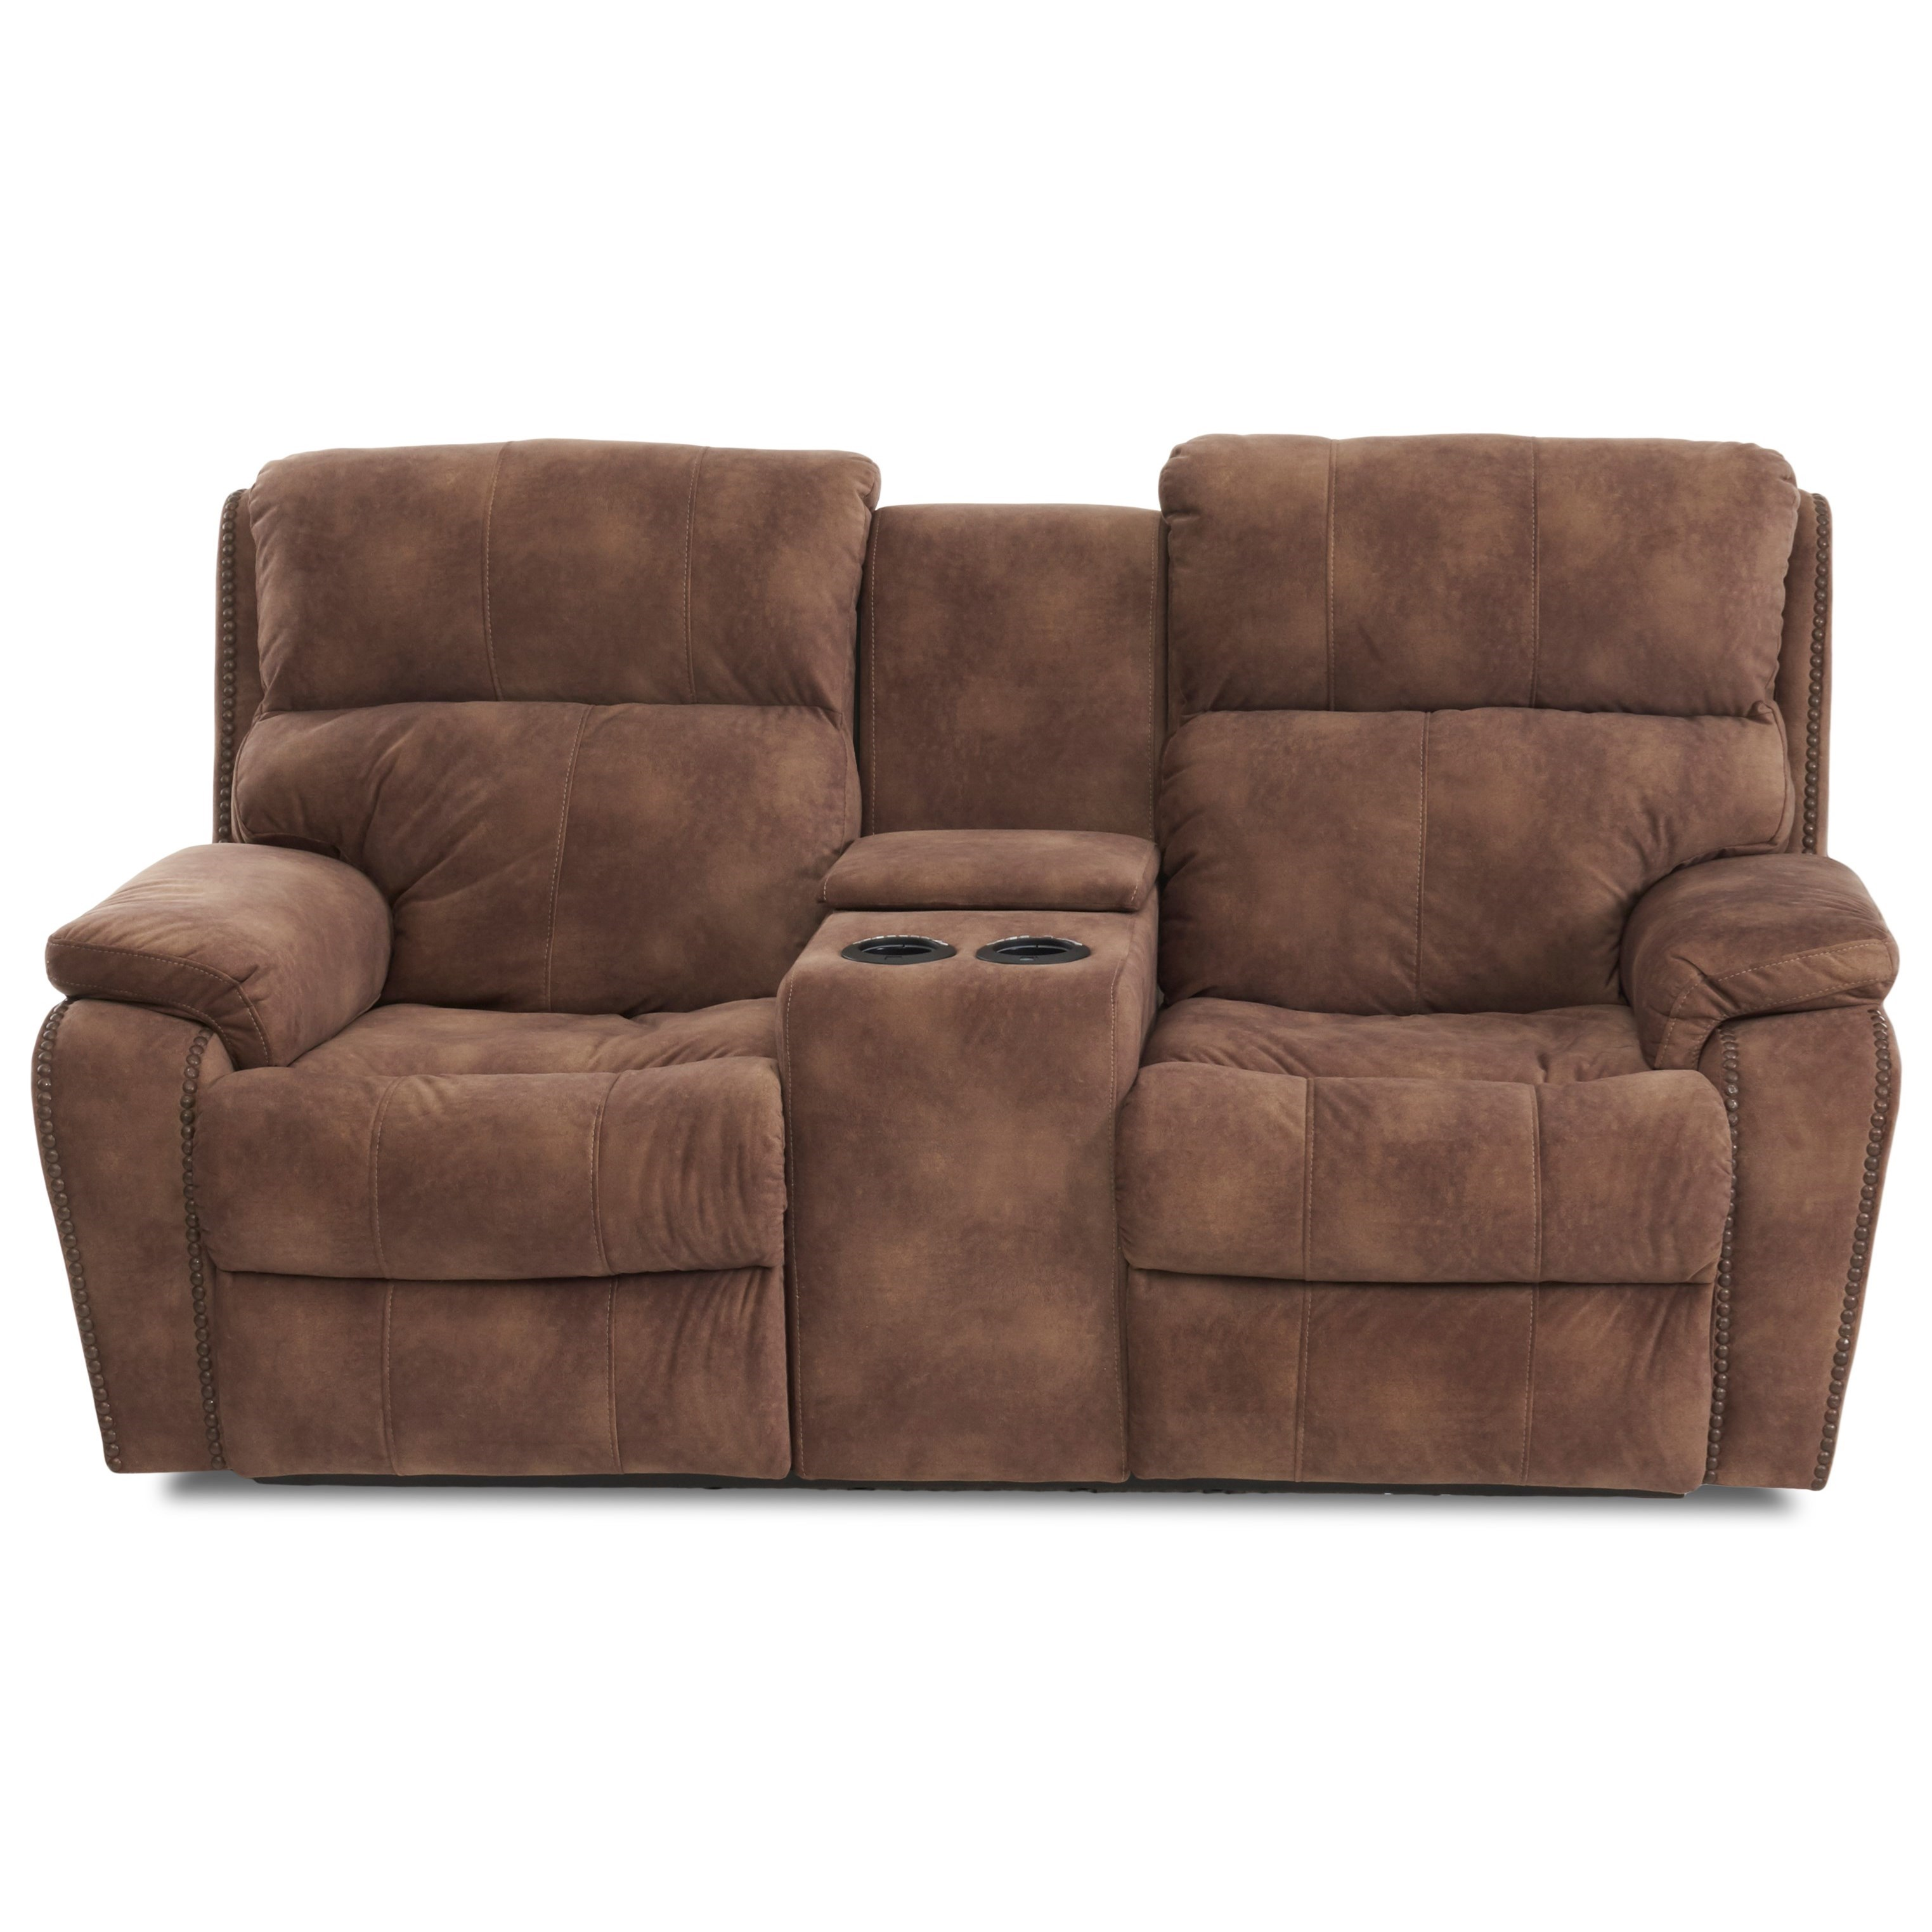 Casual Console Power Reclining Loveseat with Nails and USB Charging Ports